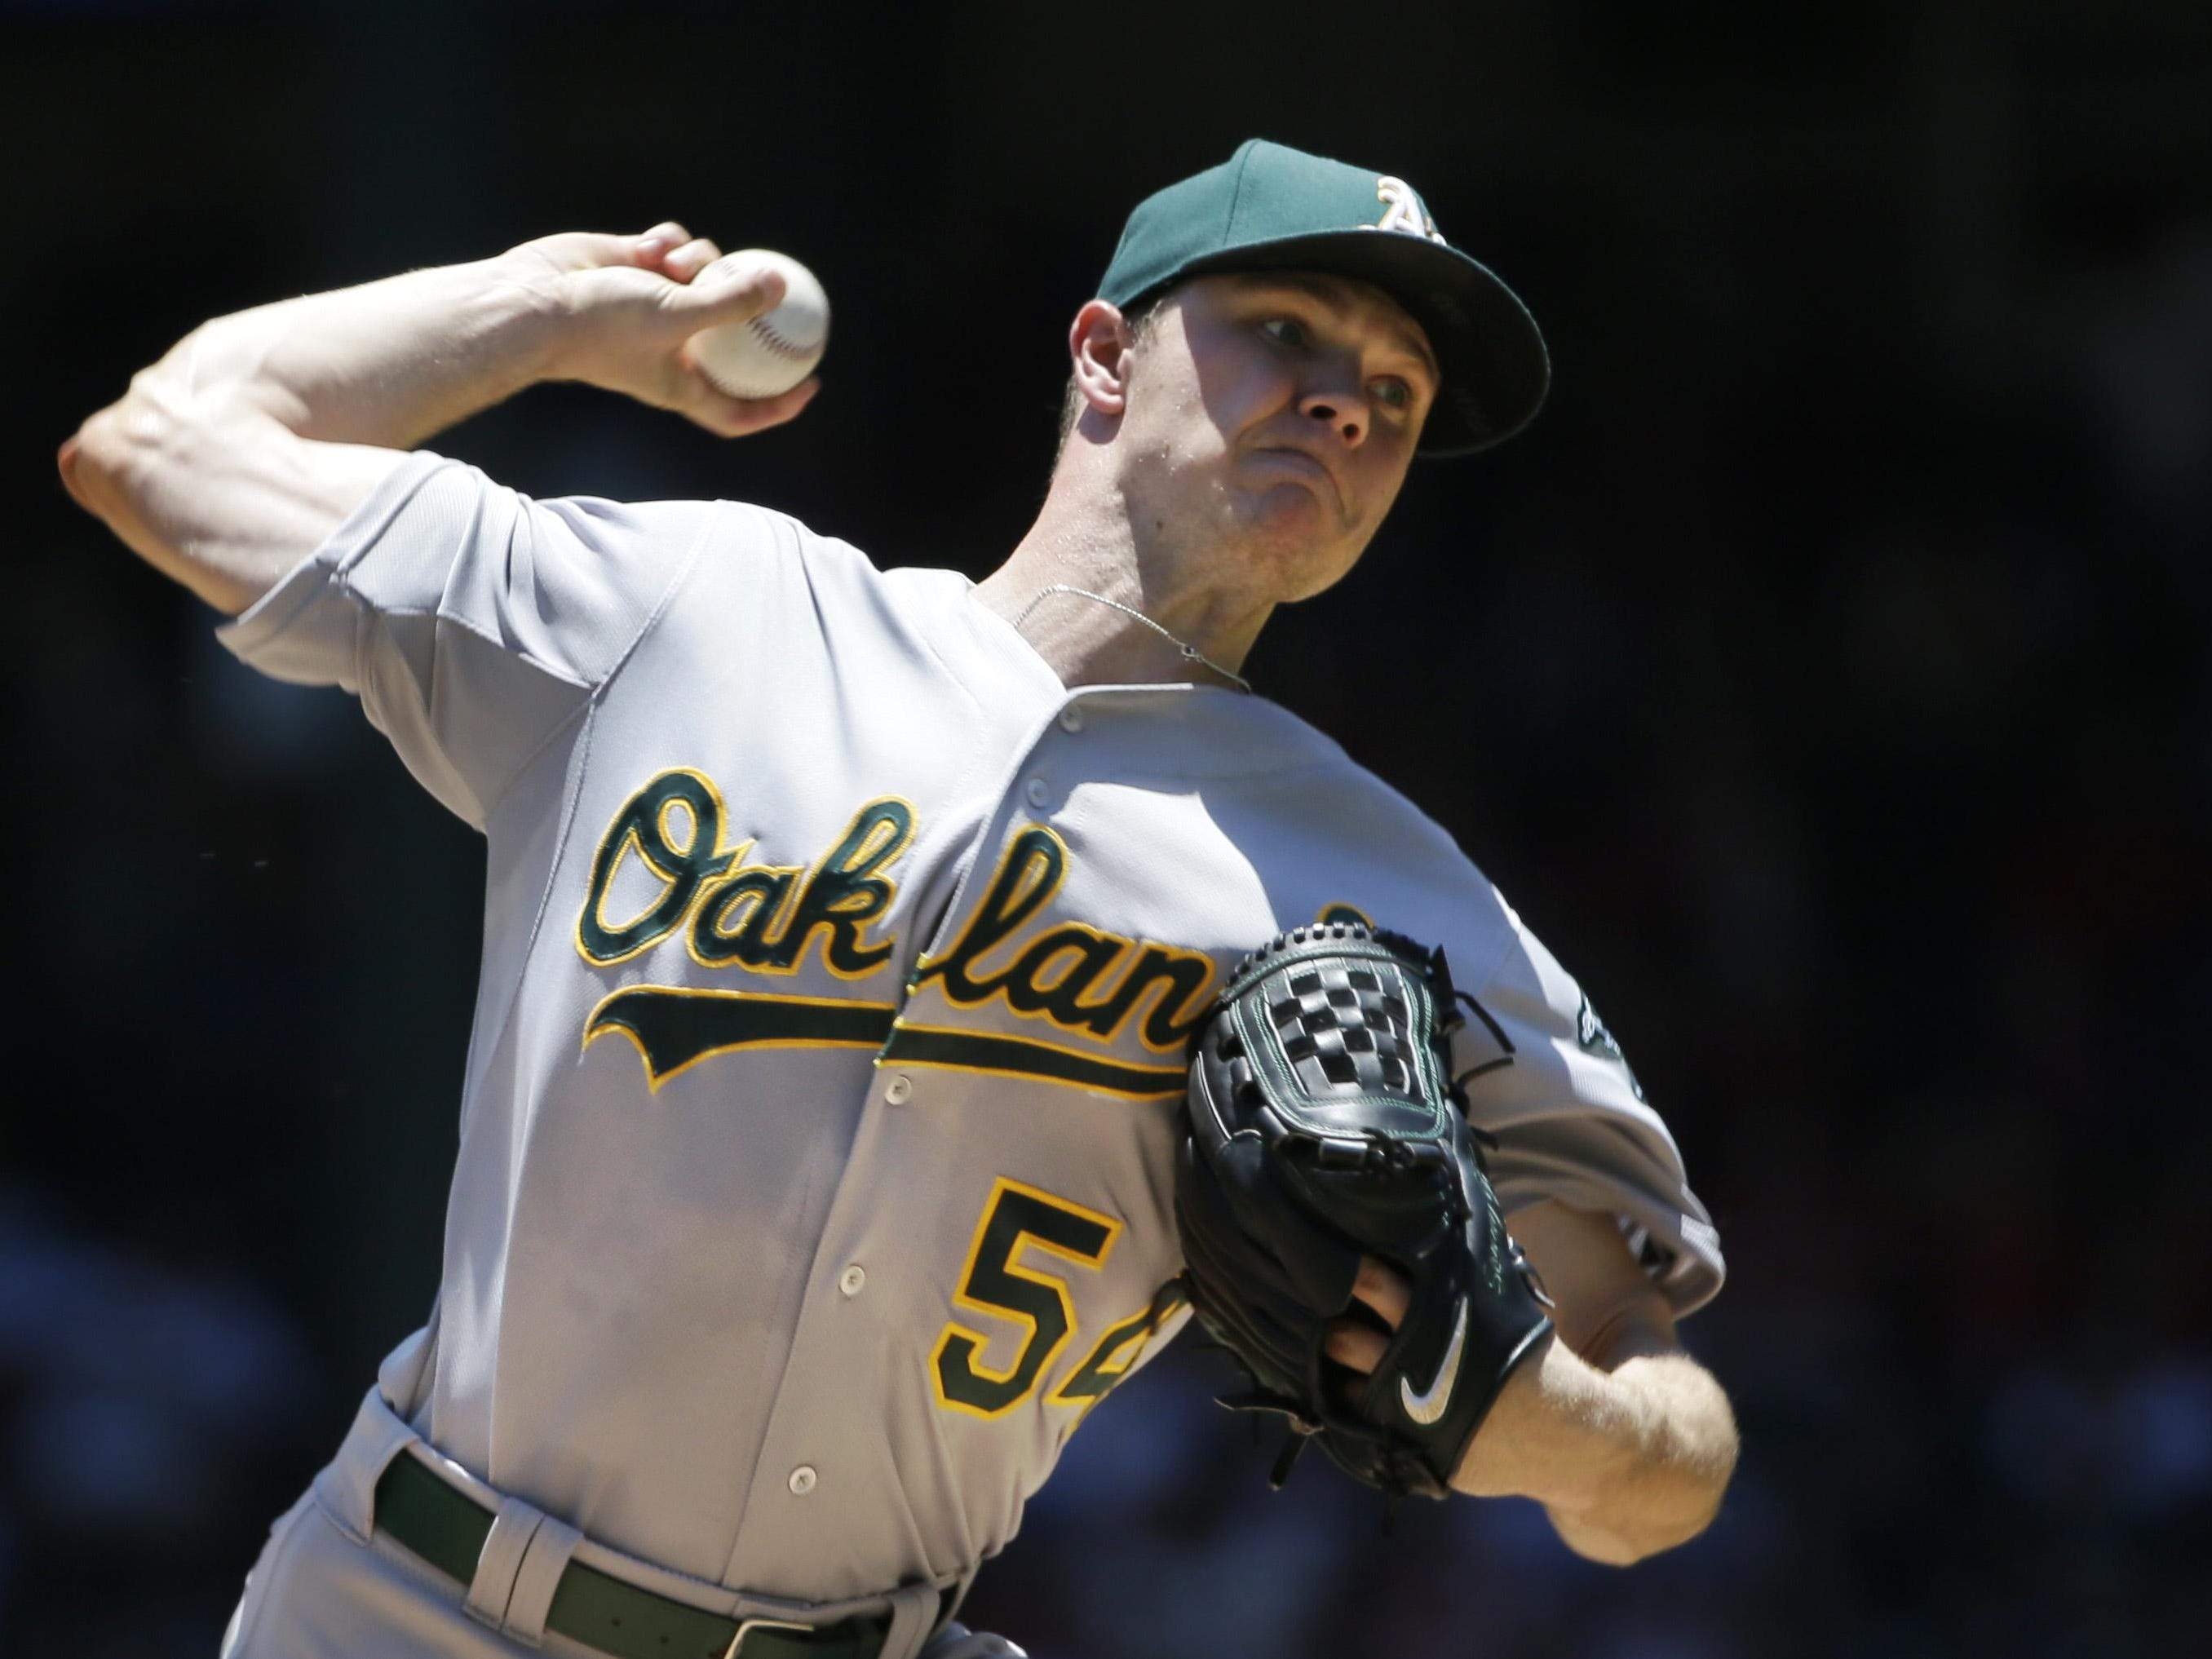 Sonny Gray was chosen for the MLB All-Star Game.